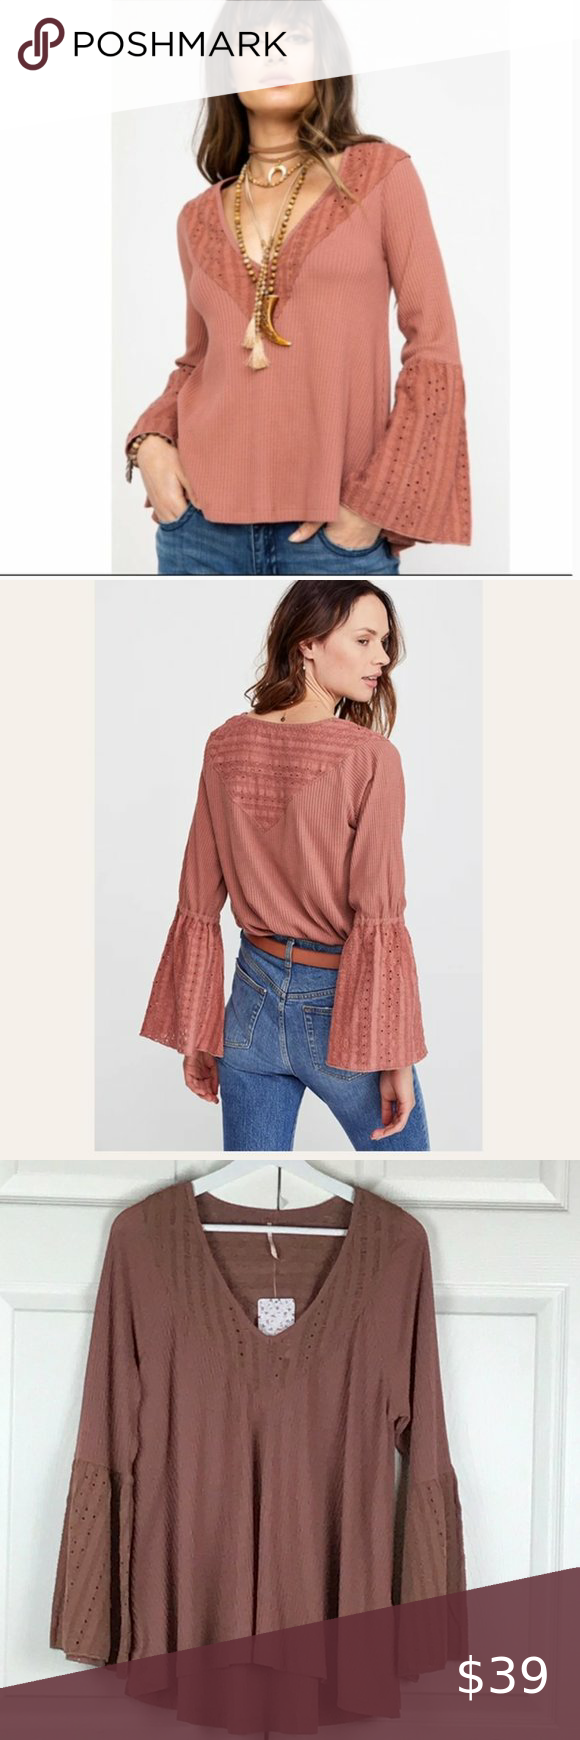 Free People Parisian Nights Top  Embroidered